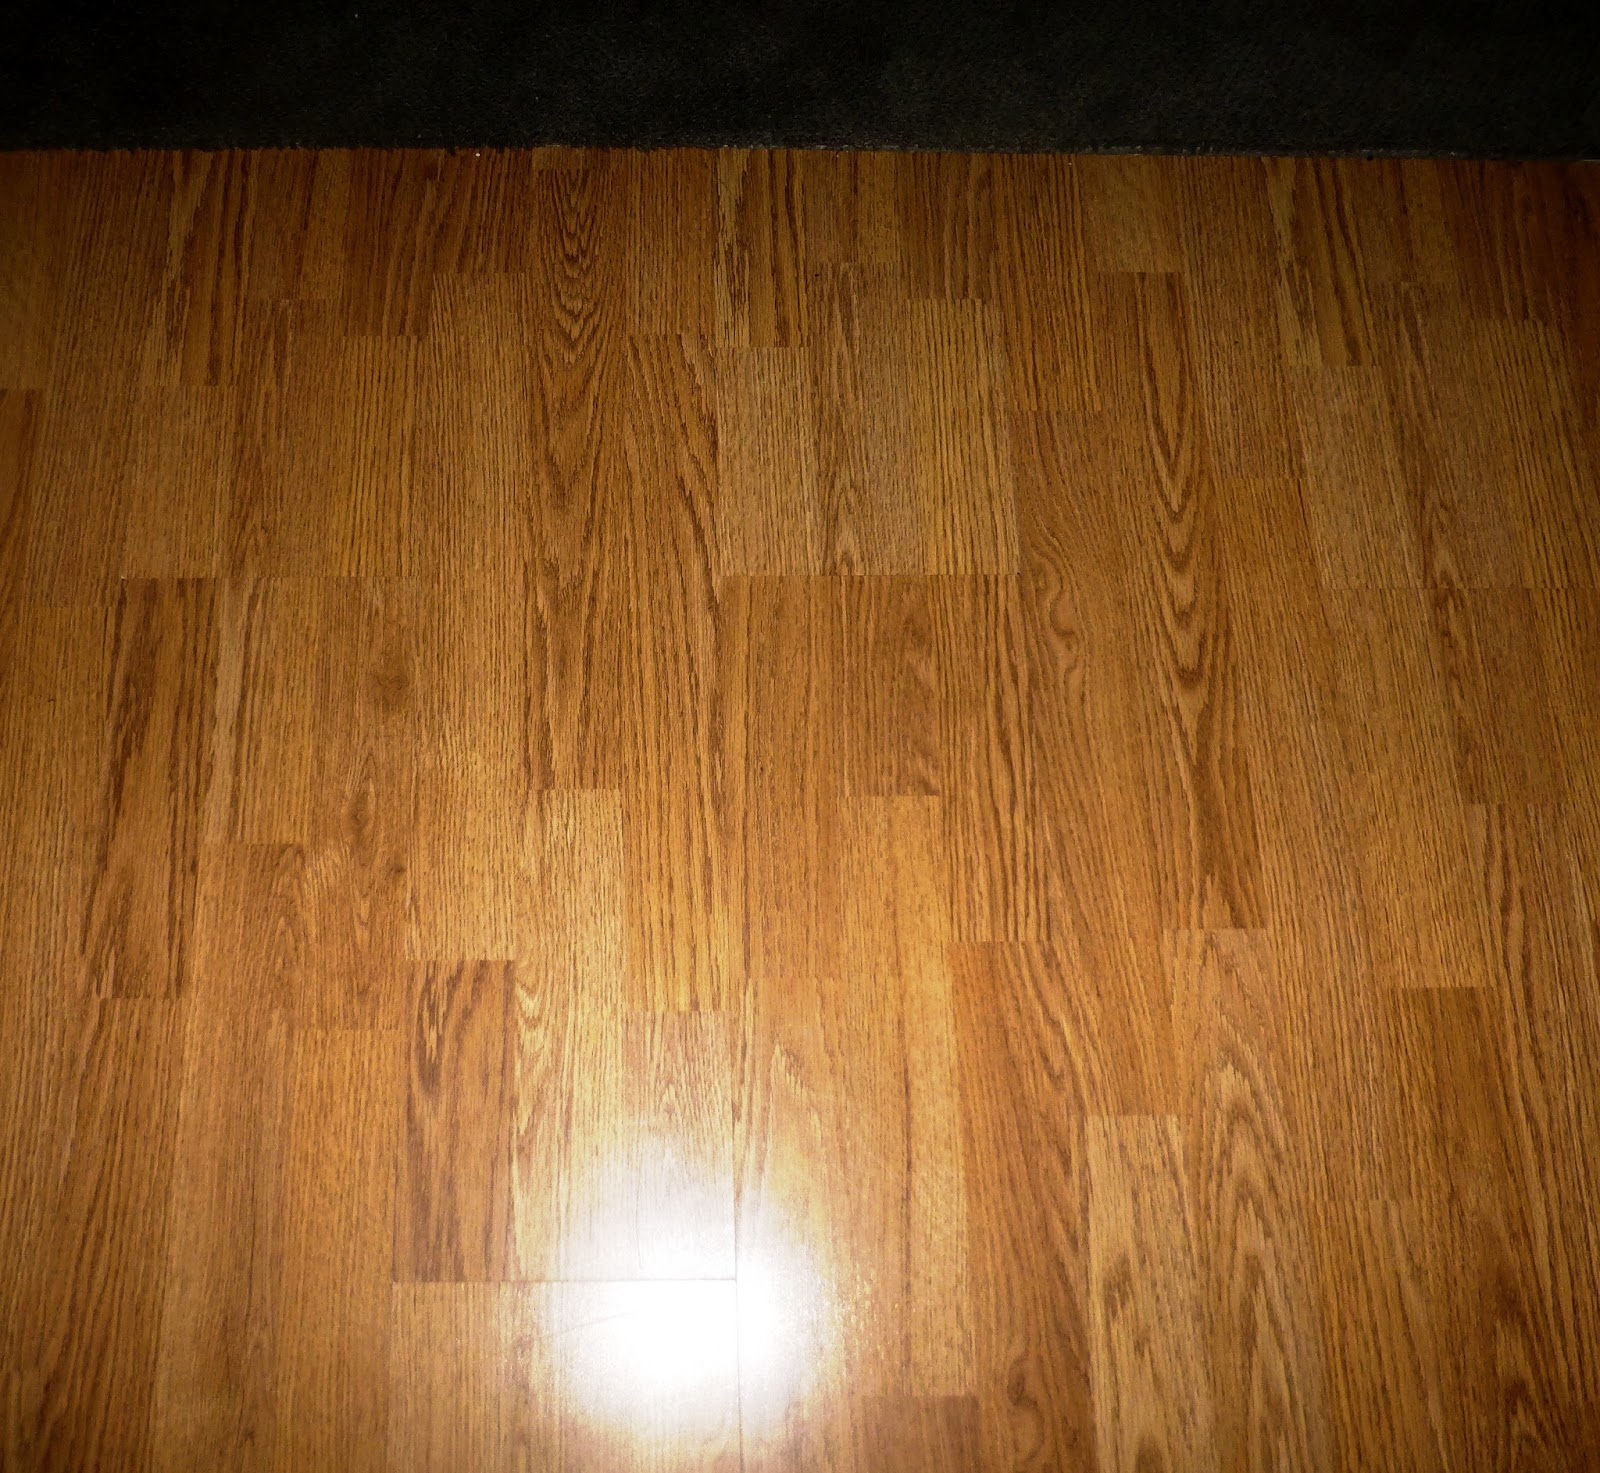 Laminate Flooring How To Get Residue Off Laminate Flooring